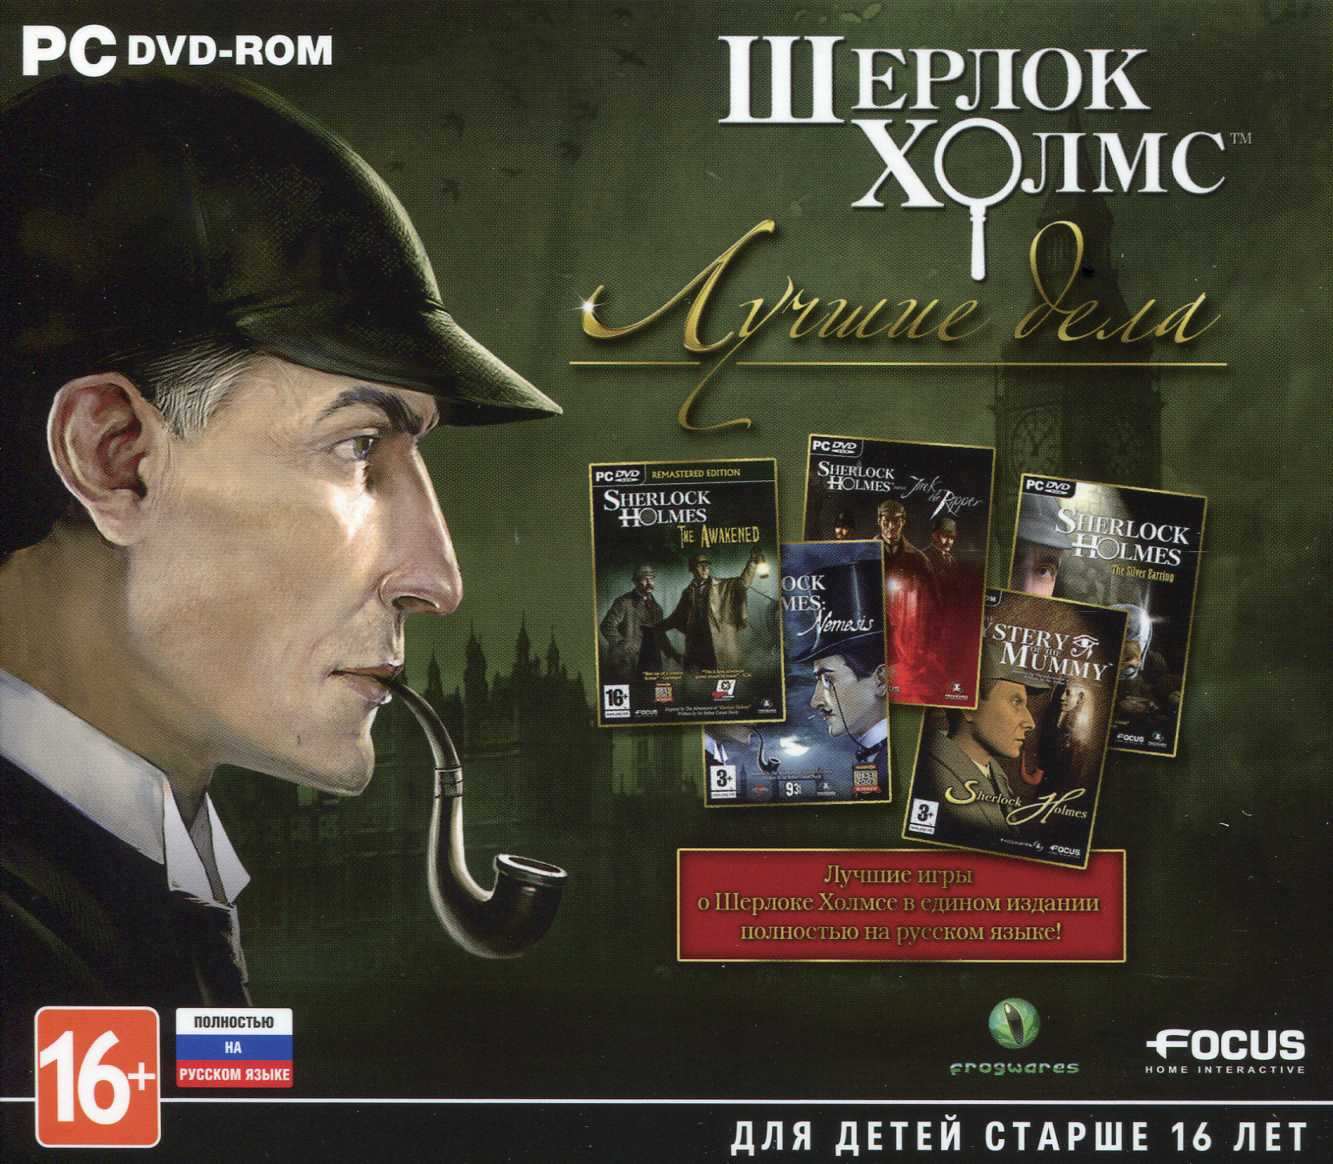 Sherlock Holmes: The best case (activation key in Steam